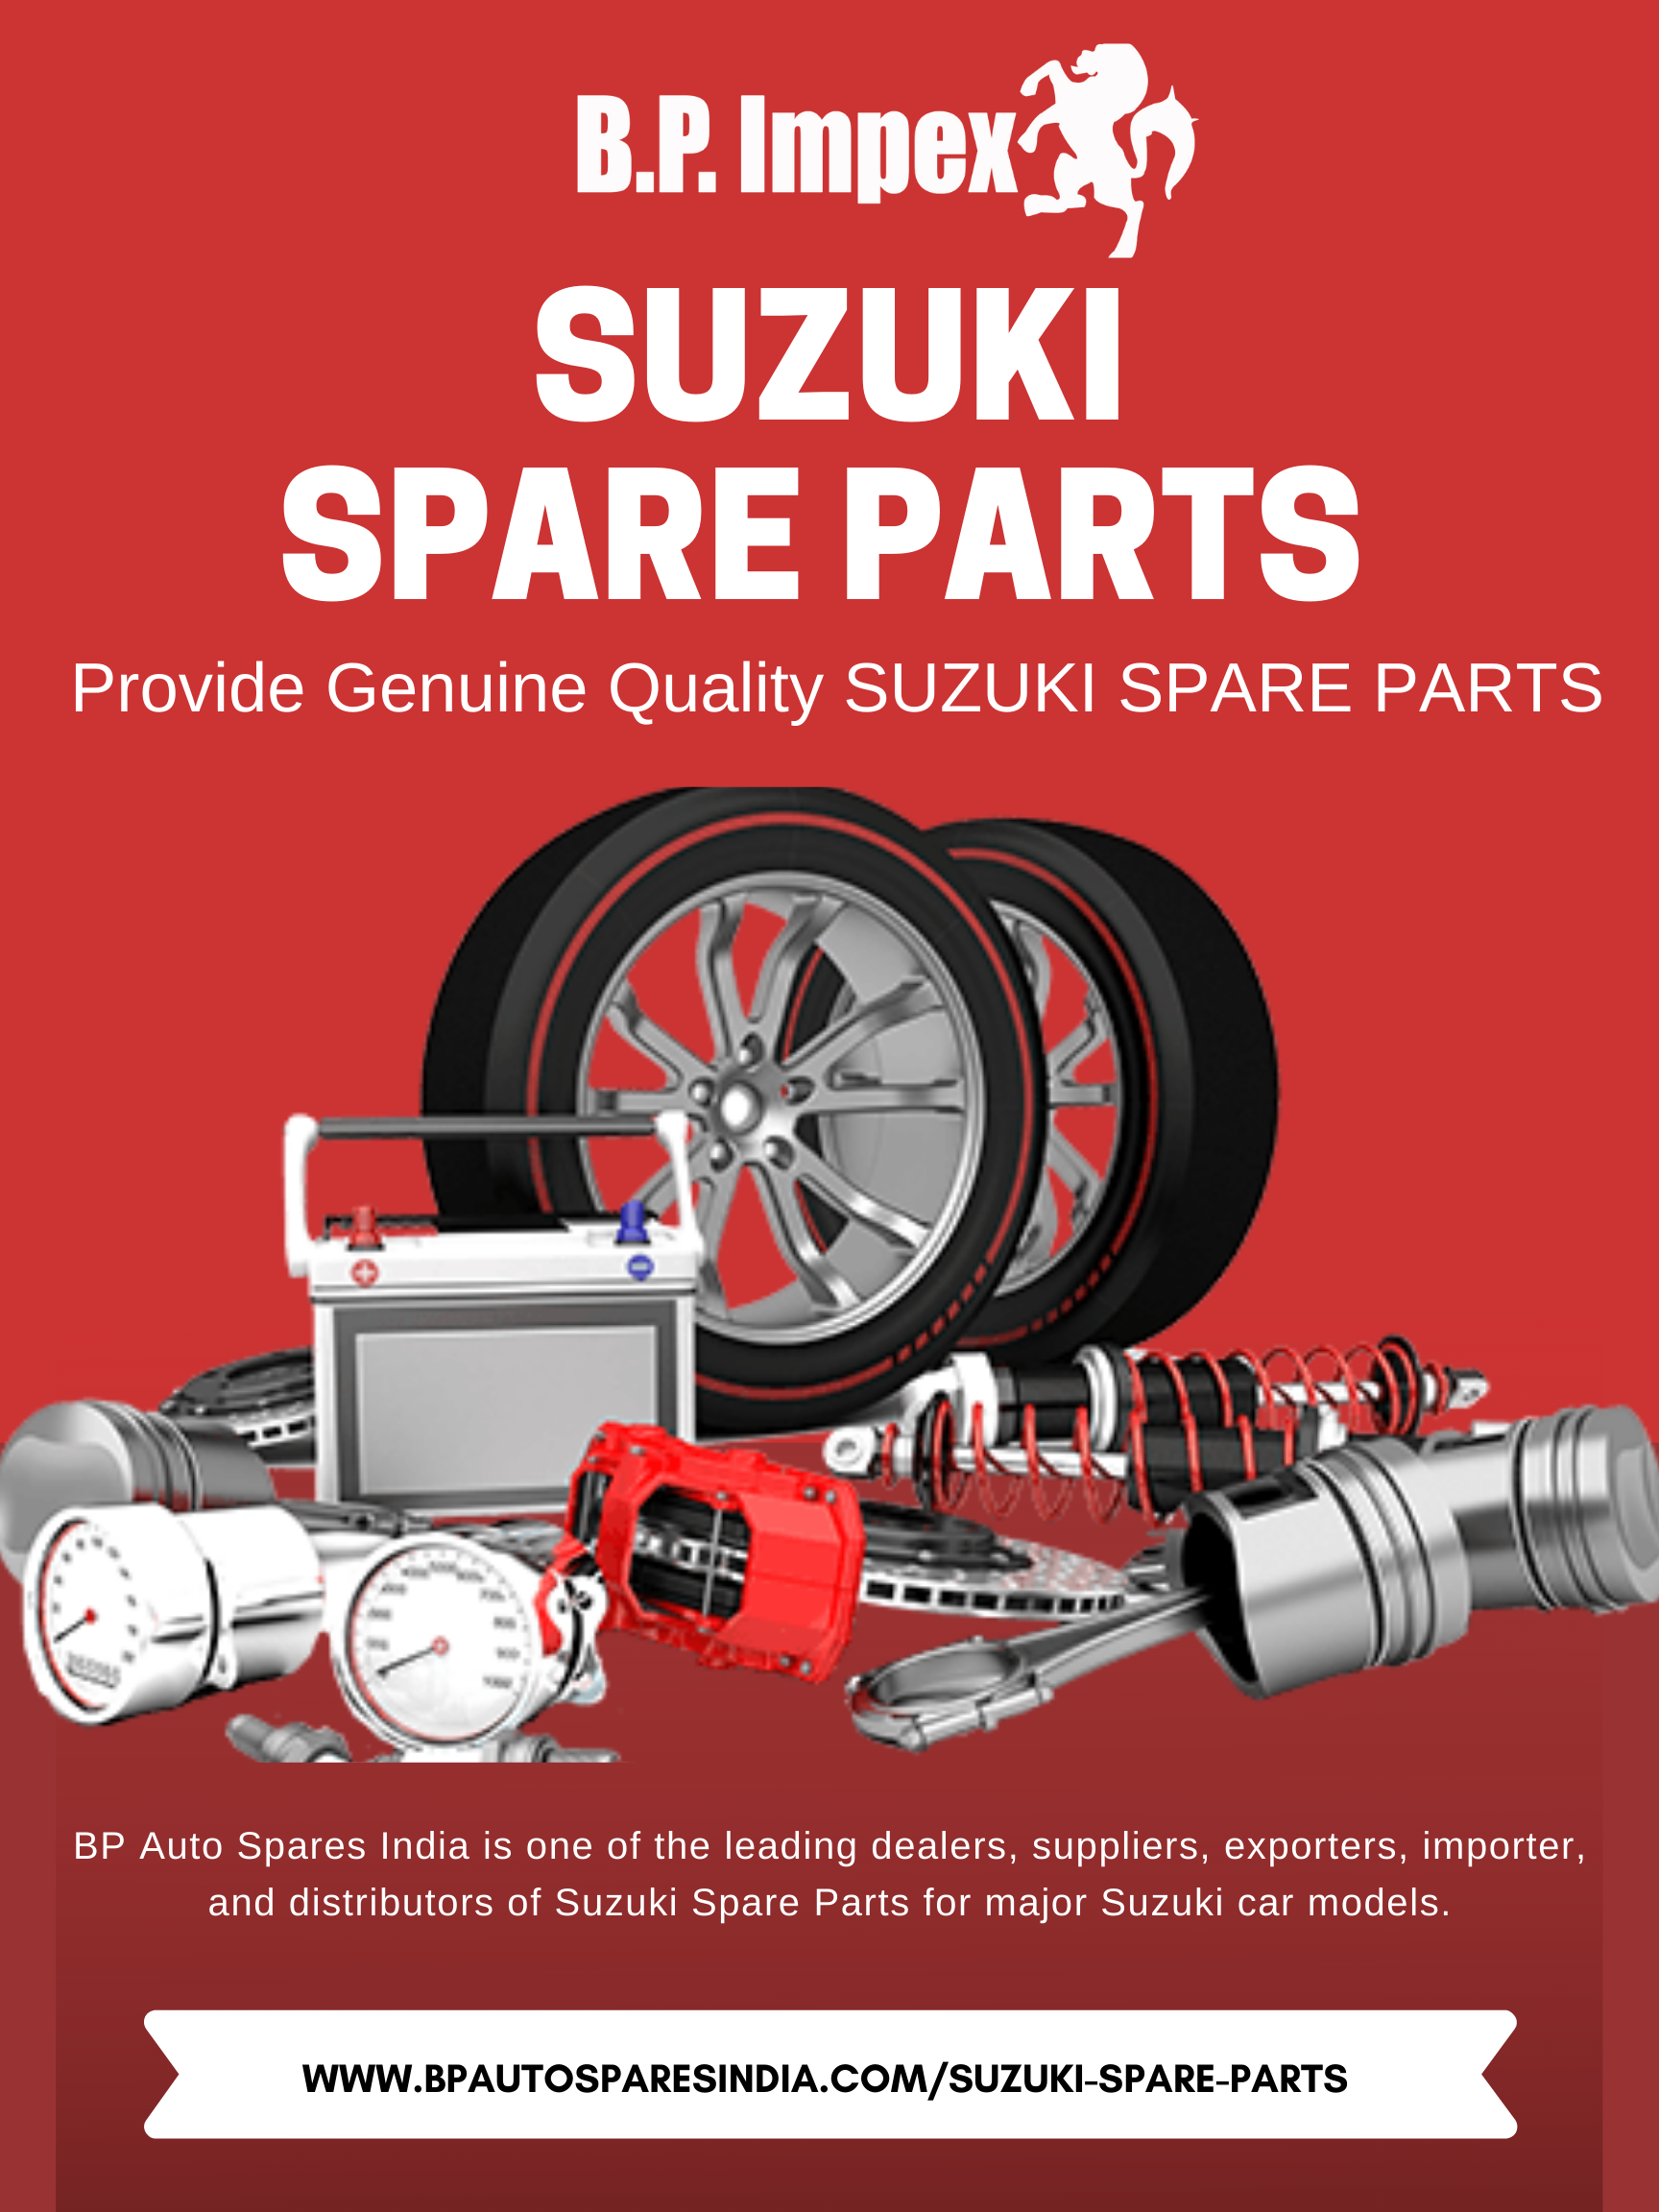 Genuine Quality Suzuki Spare Parts Spare Parts Car Spare Parts Suzuki